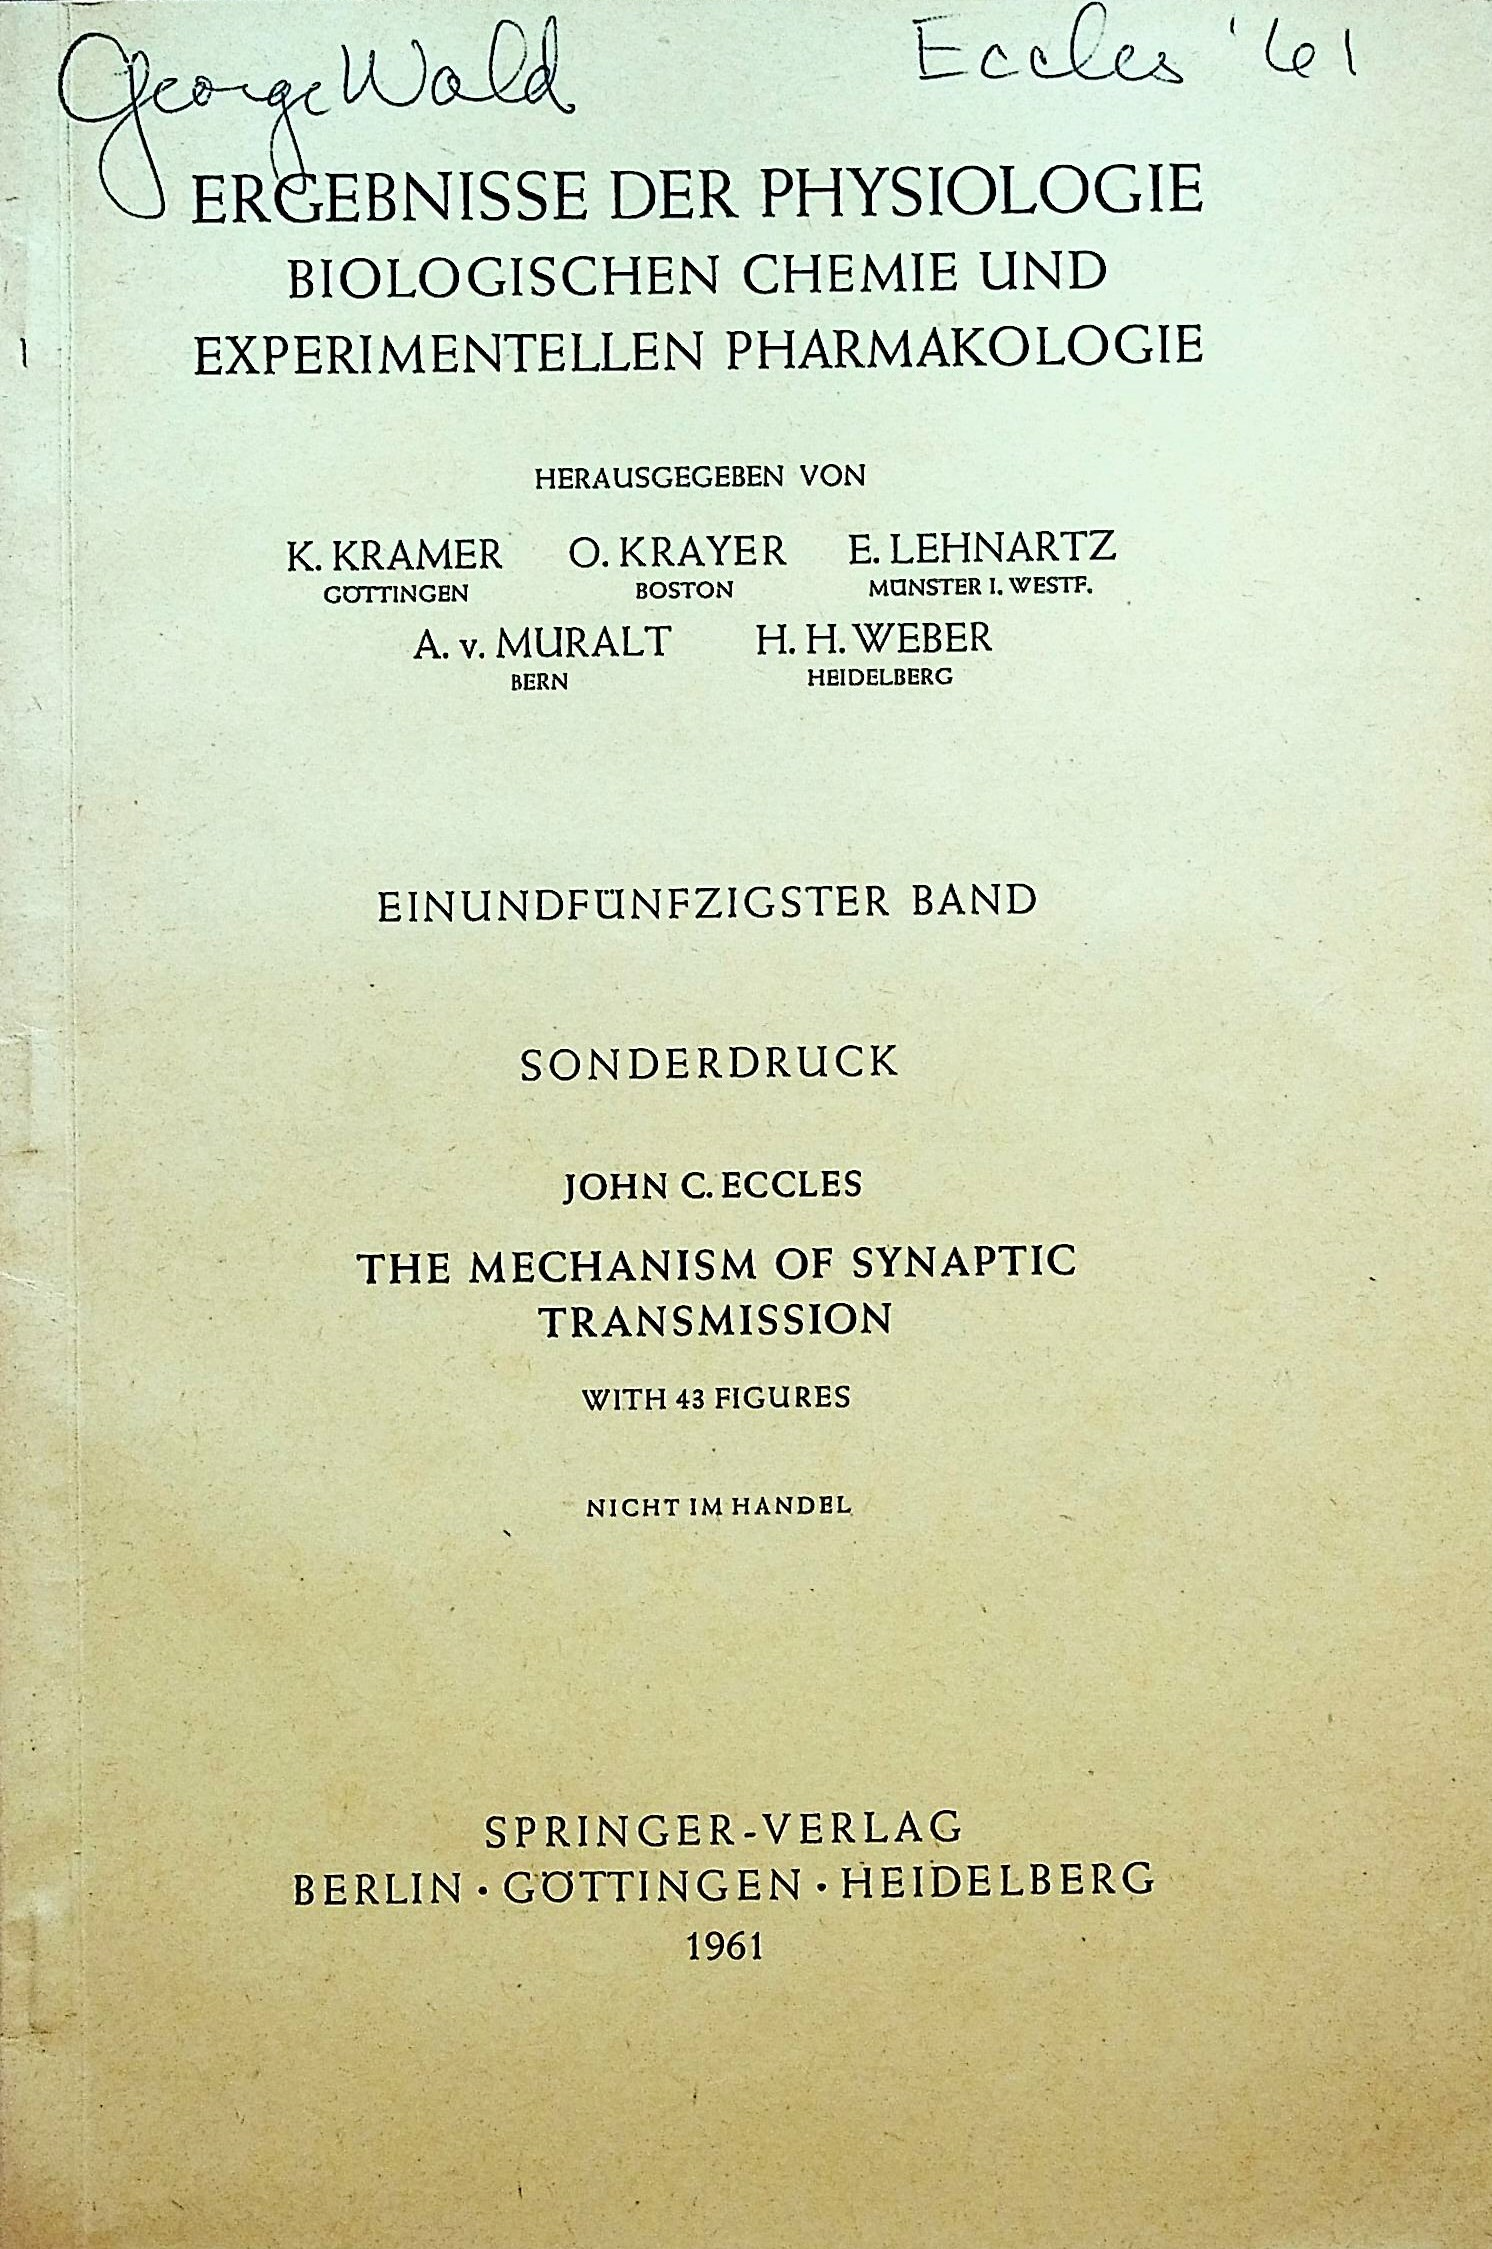 Image for The Mechanism of Synaptic Transmission, offprint from Ergebnisse der Physiologie Biologischen Chemie und Experimentellen Pharmakologie. Einundfunfzigste band [Results of Physiology, Biological Chemistry and Experimental Pharmacology. Volume 51]